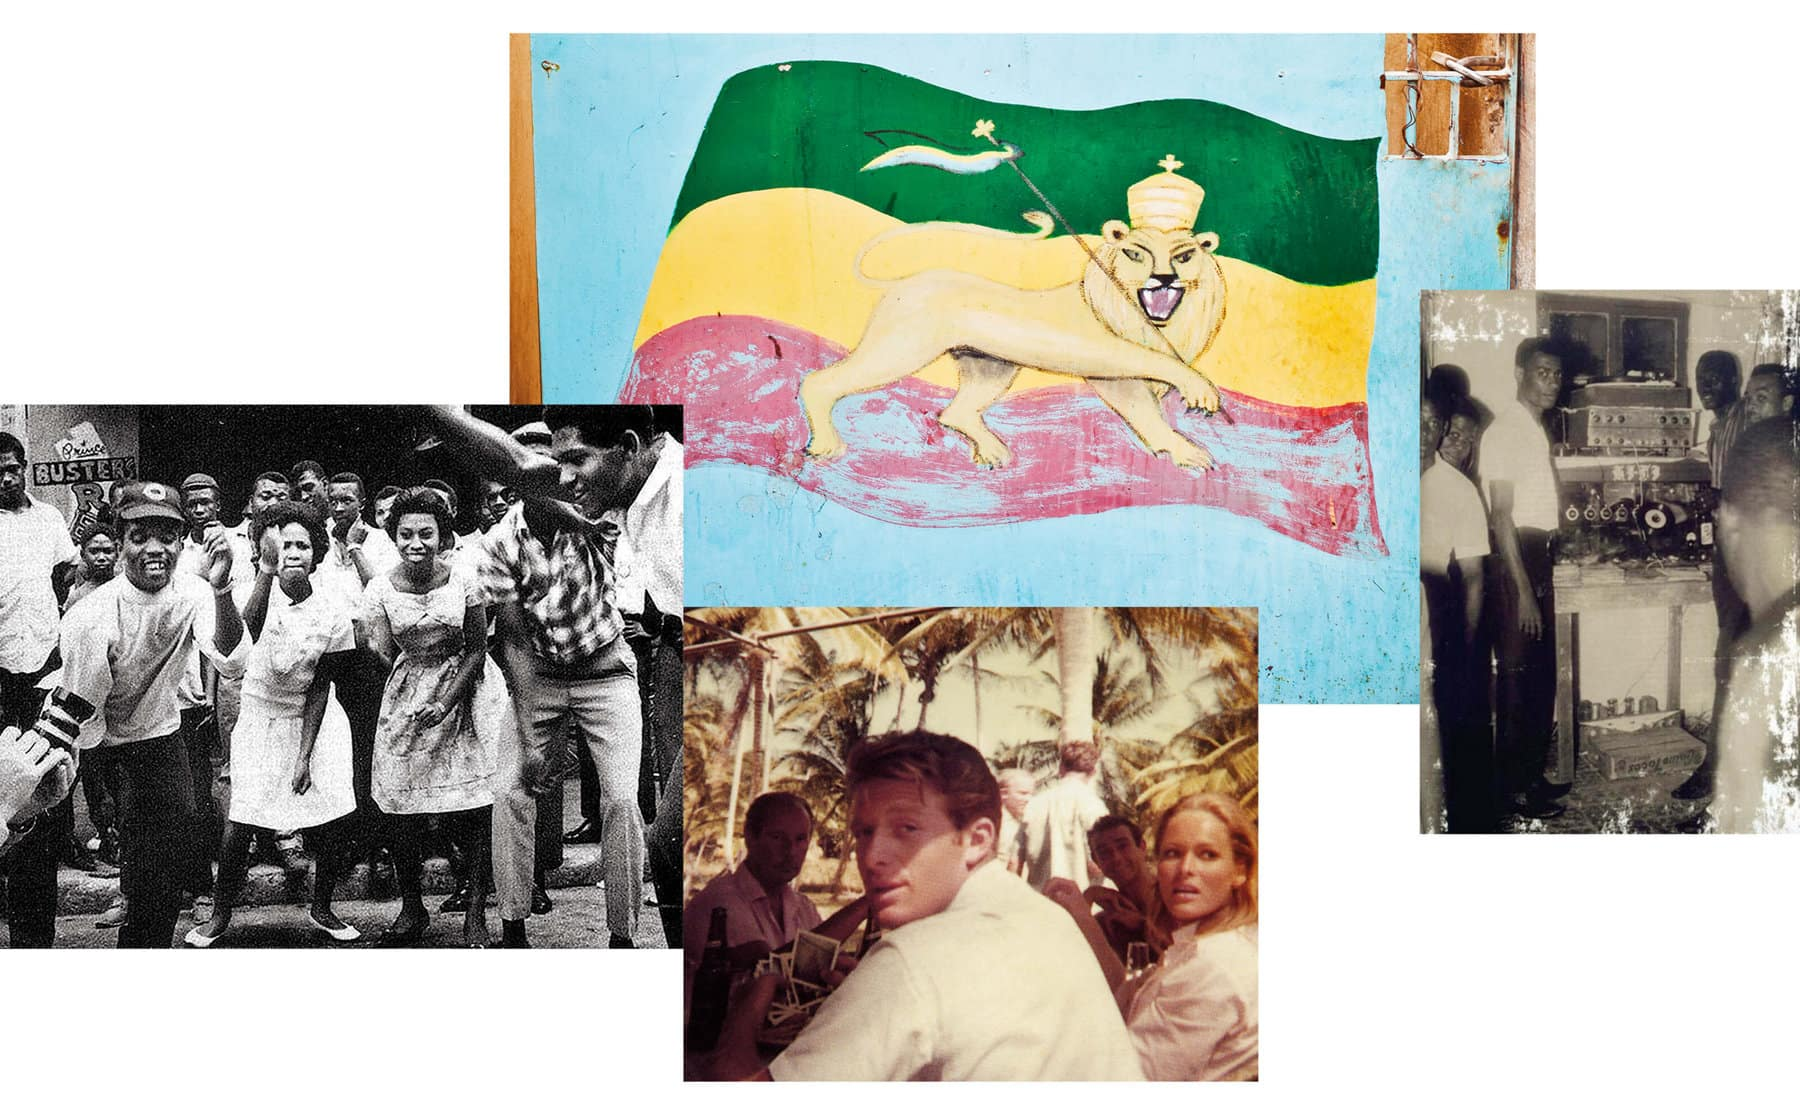 A collage of color and black-and-white photos of Jamaican musicians with sound systems, Jamaicans dancing outdoors, a painting of an Ethiopian flag with a lion holding a scepter, a young Chris Blackwell seated with other people.